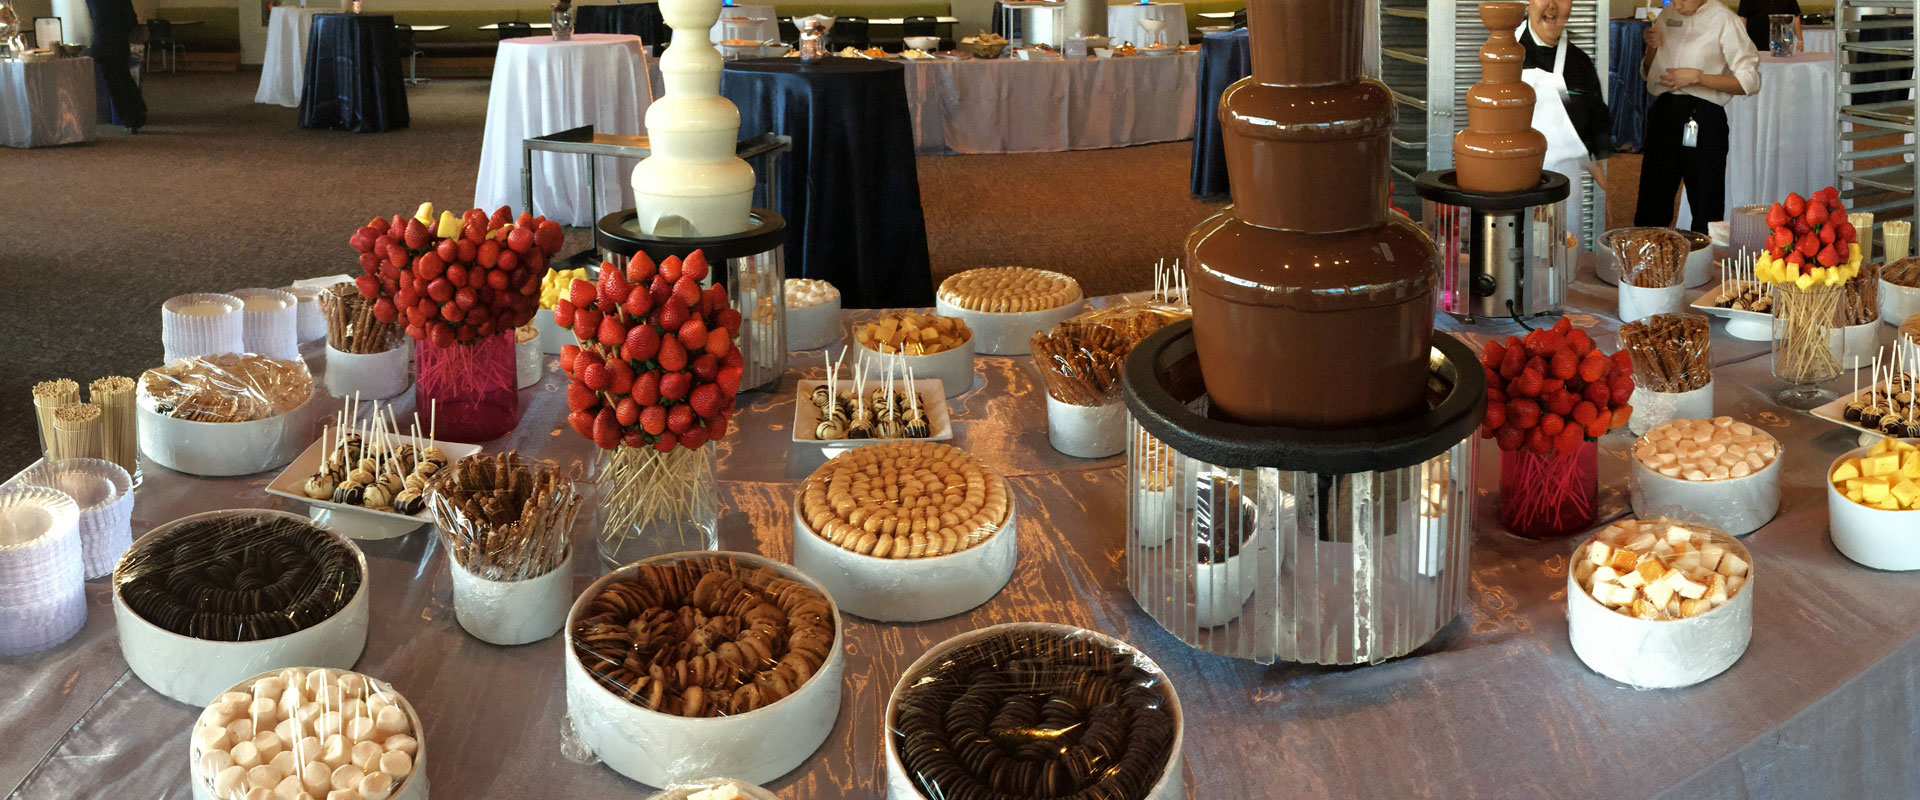 How to Select A Chocolate Fountain2